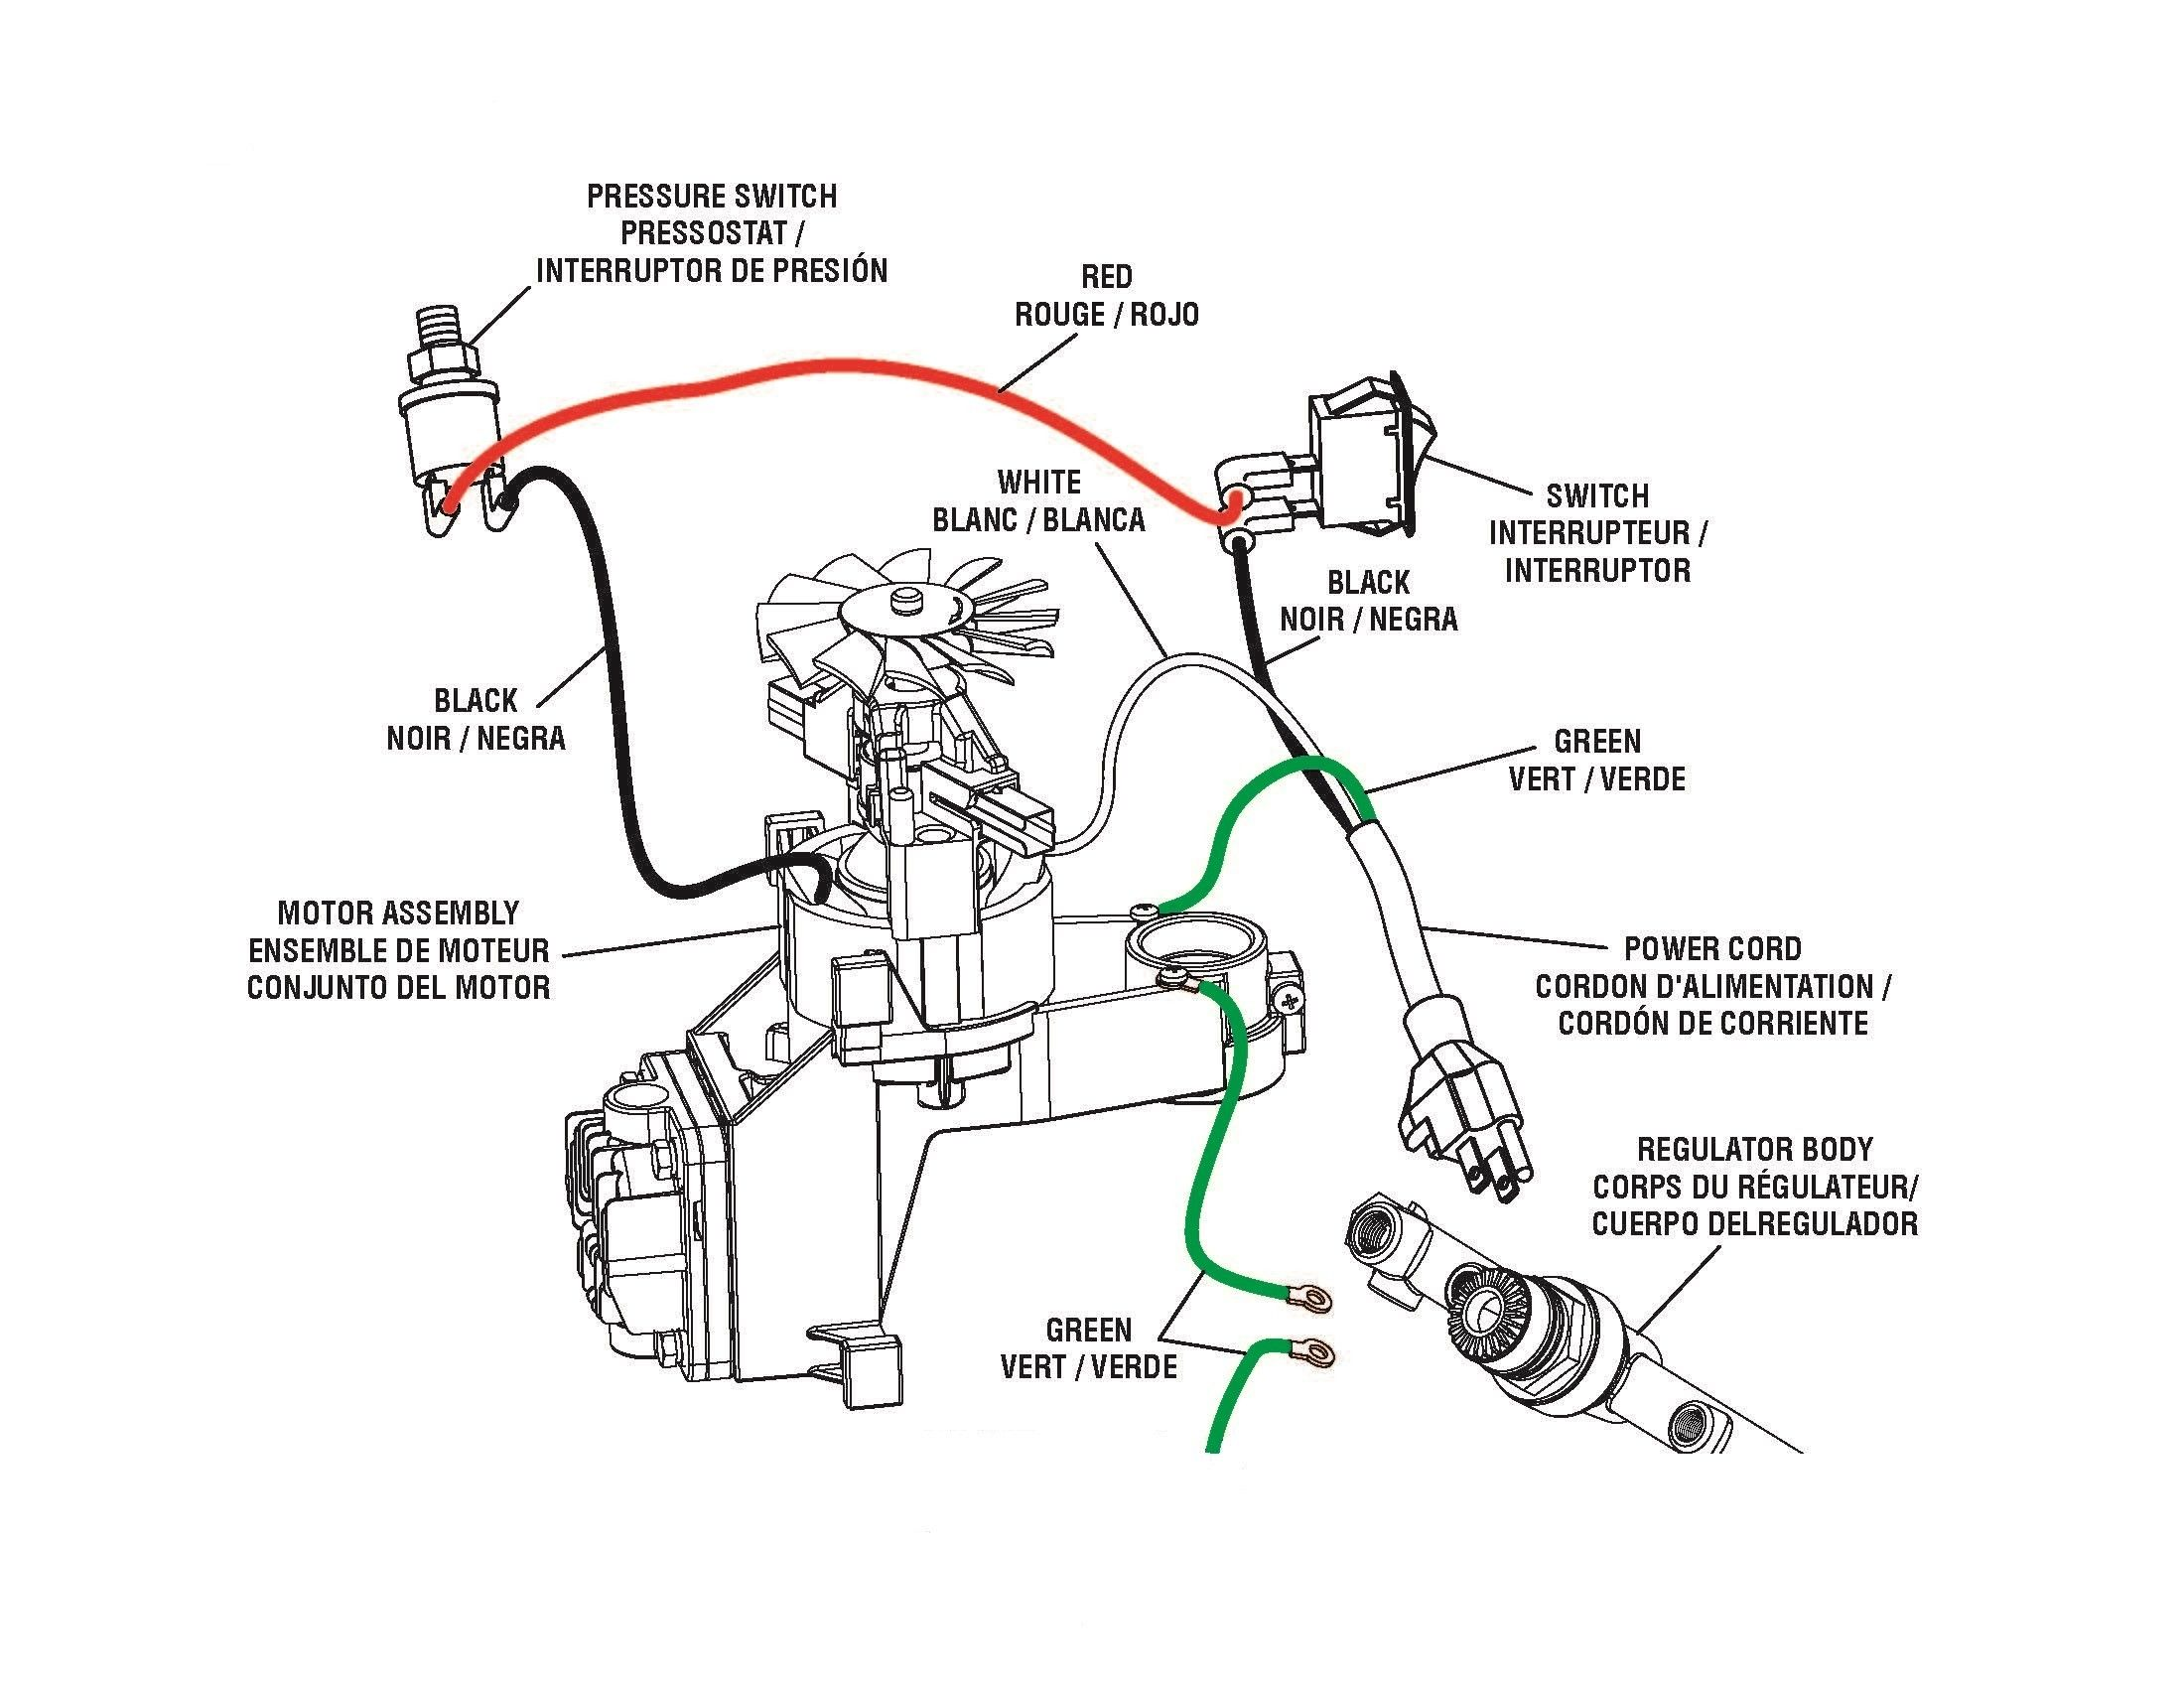 Unique Wiring Diagram For Air Compressor Pressure Switch Air Compressor Pressure Switch Compressor Air Compressor